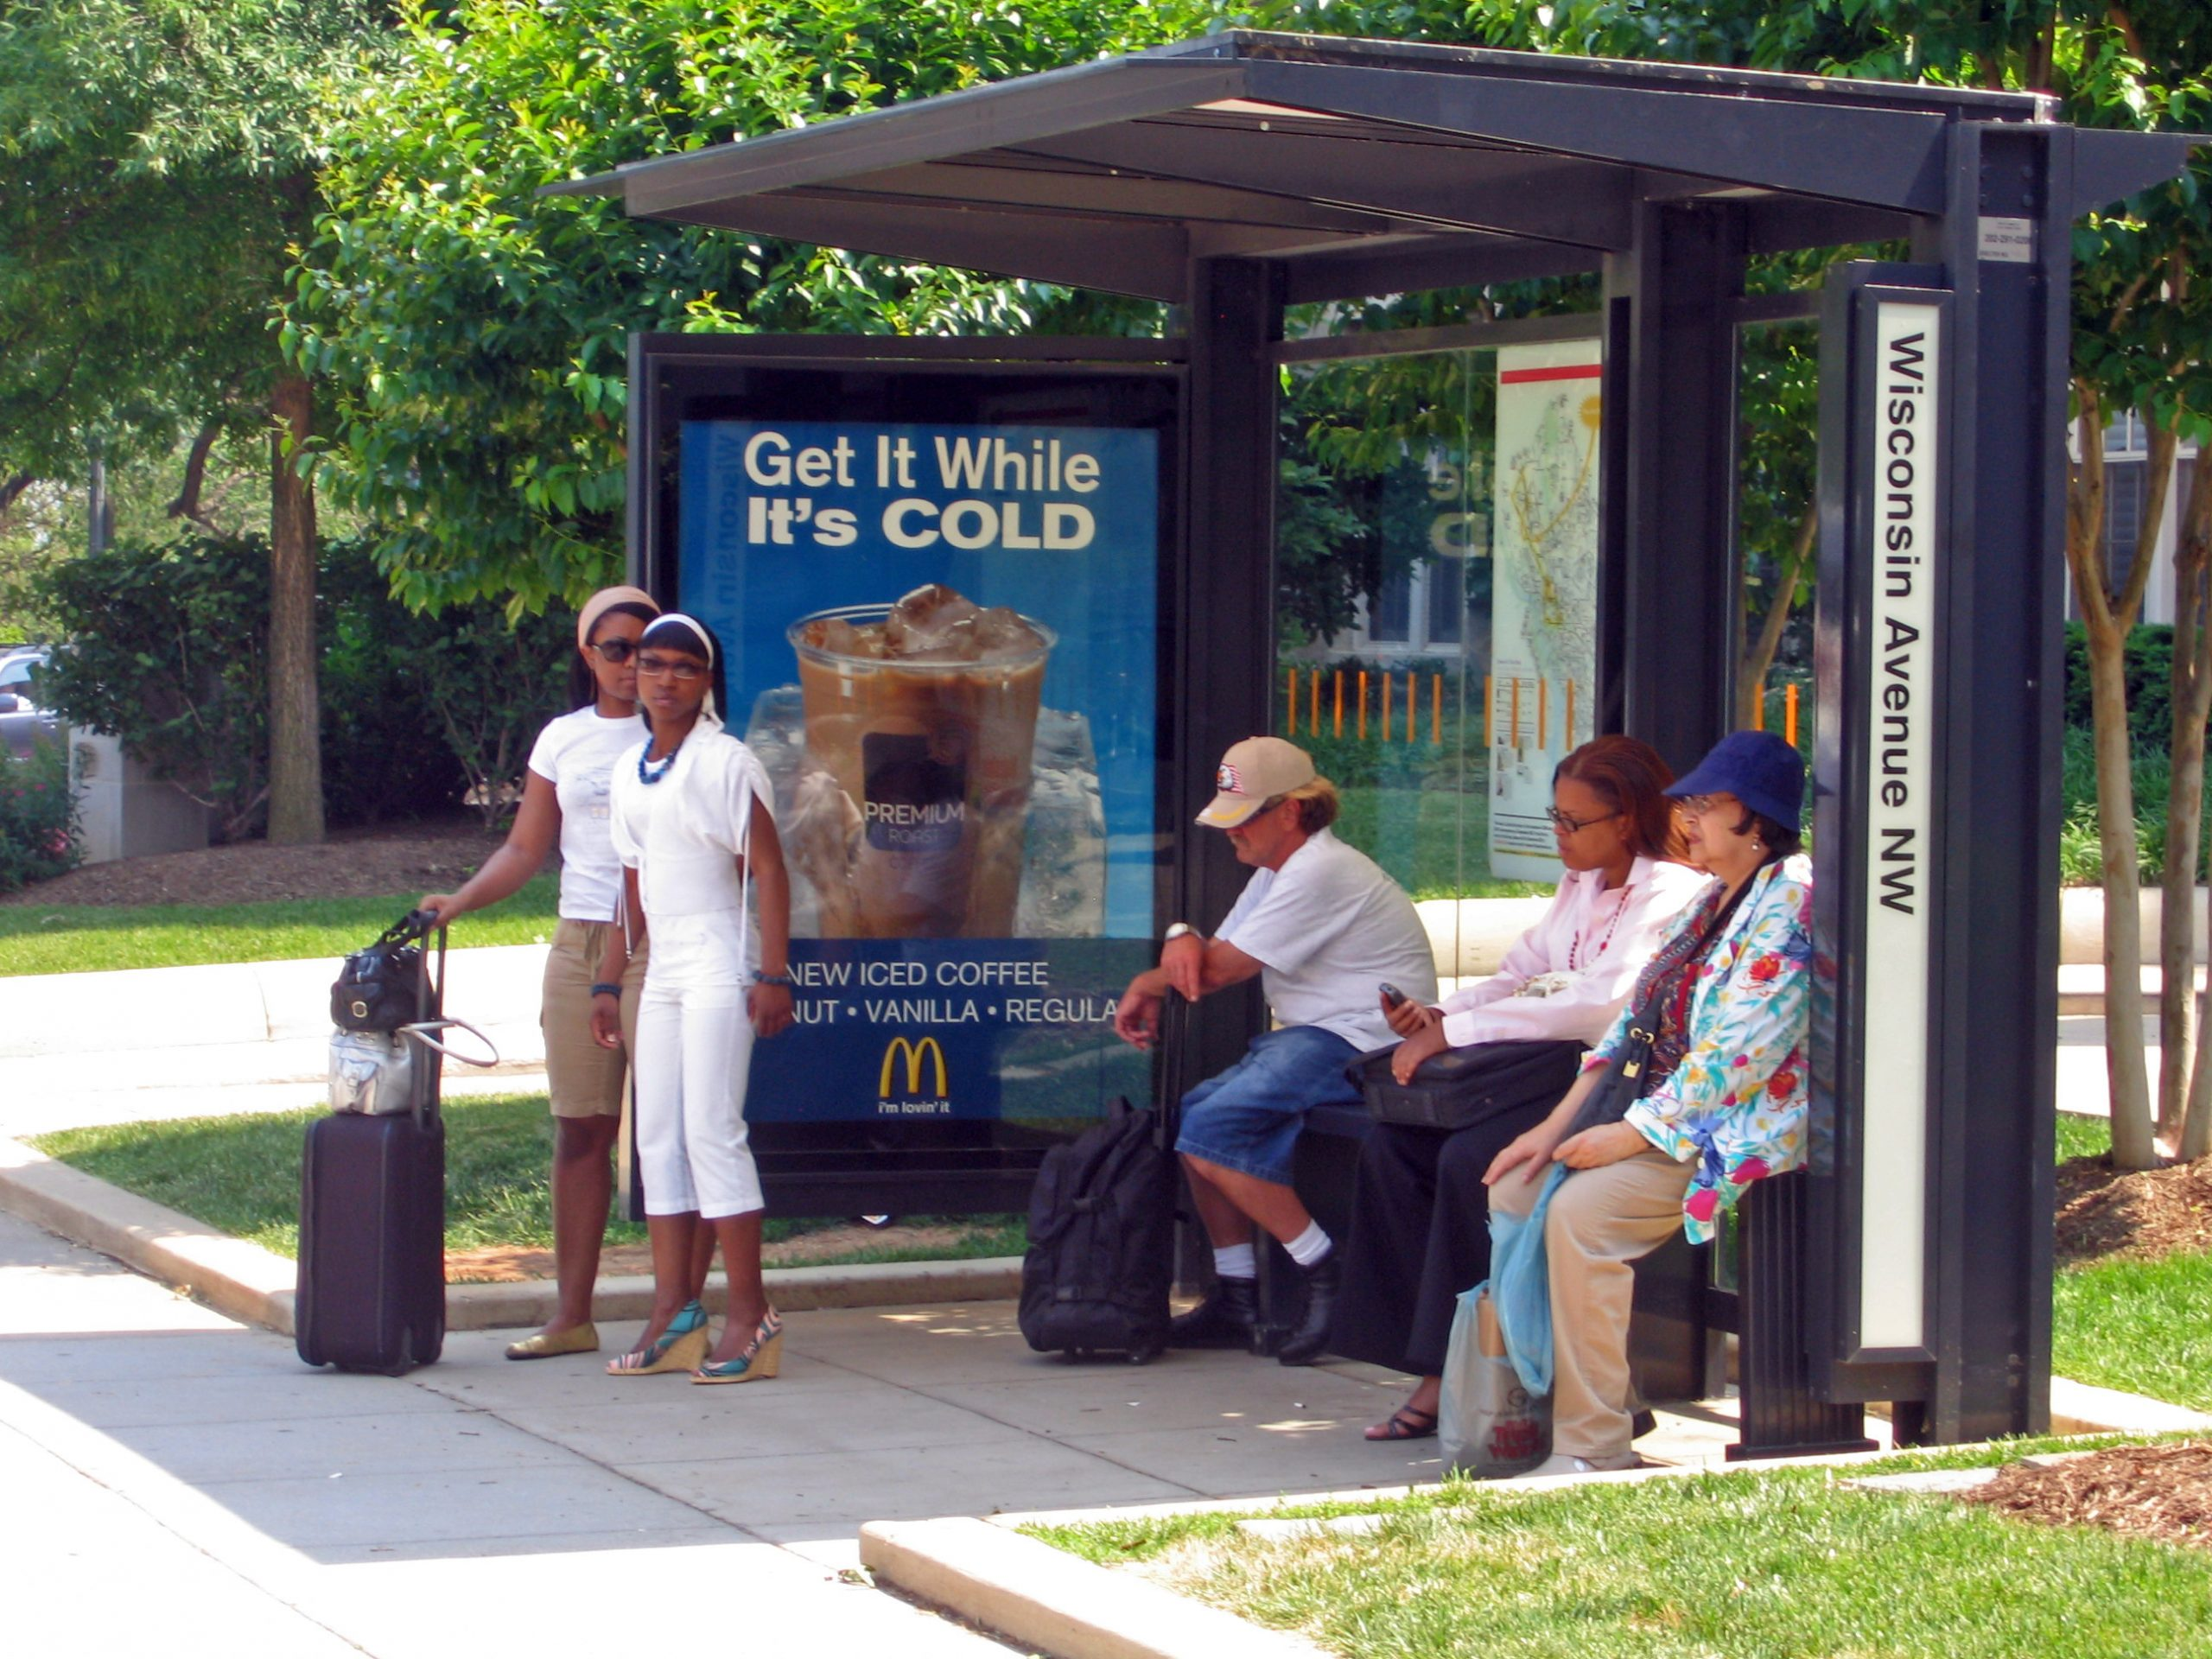 people at a bus shelter